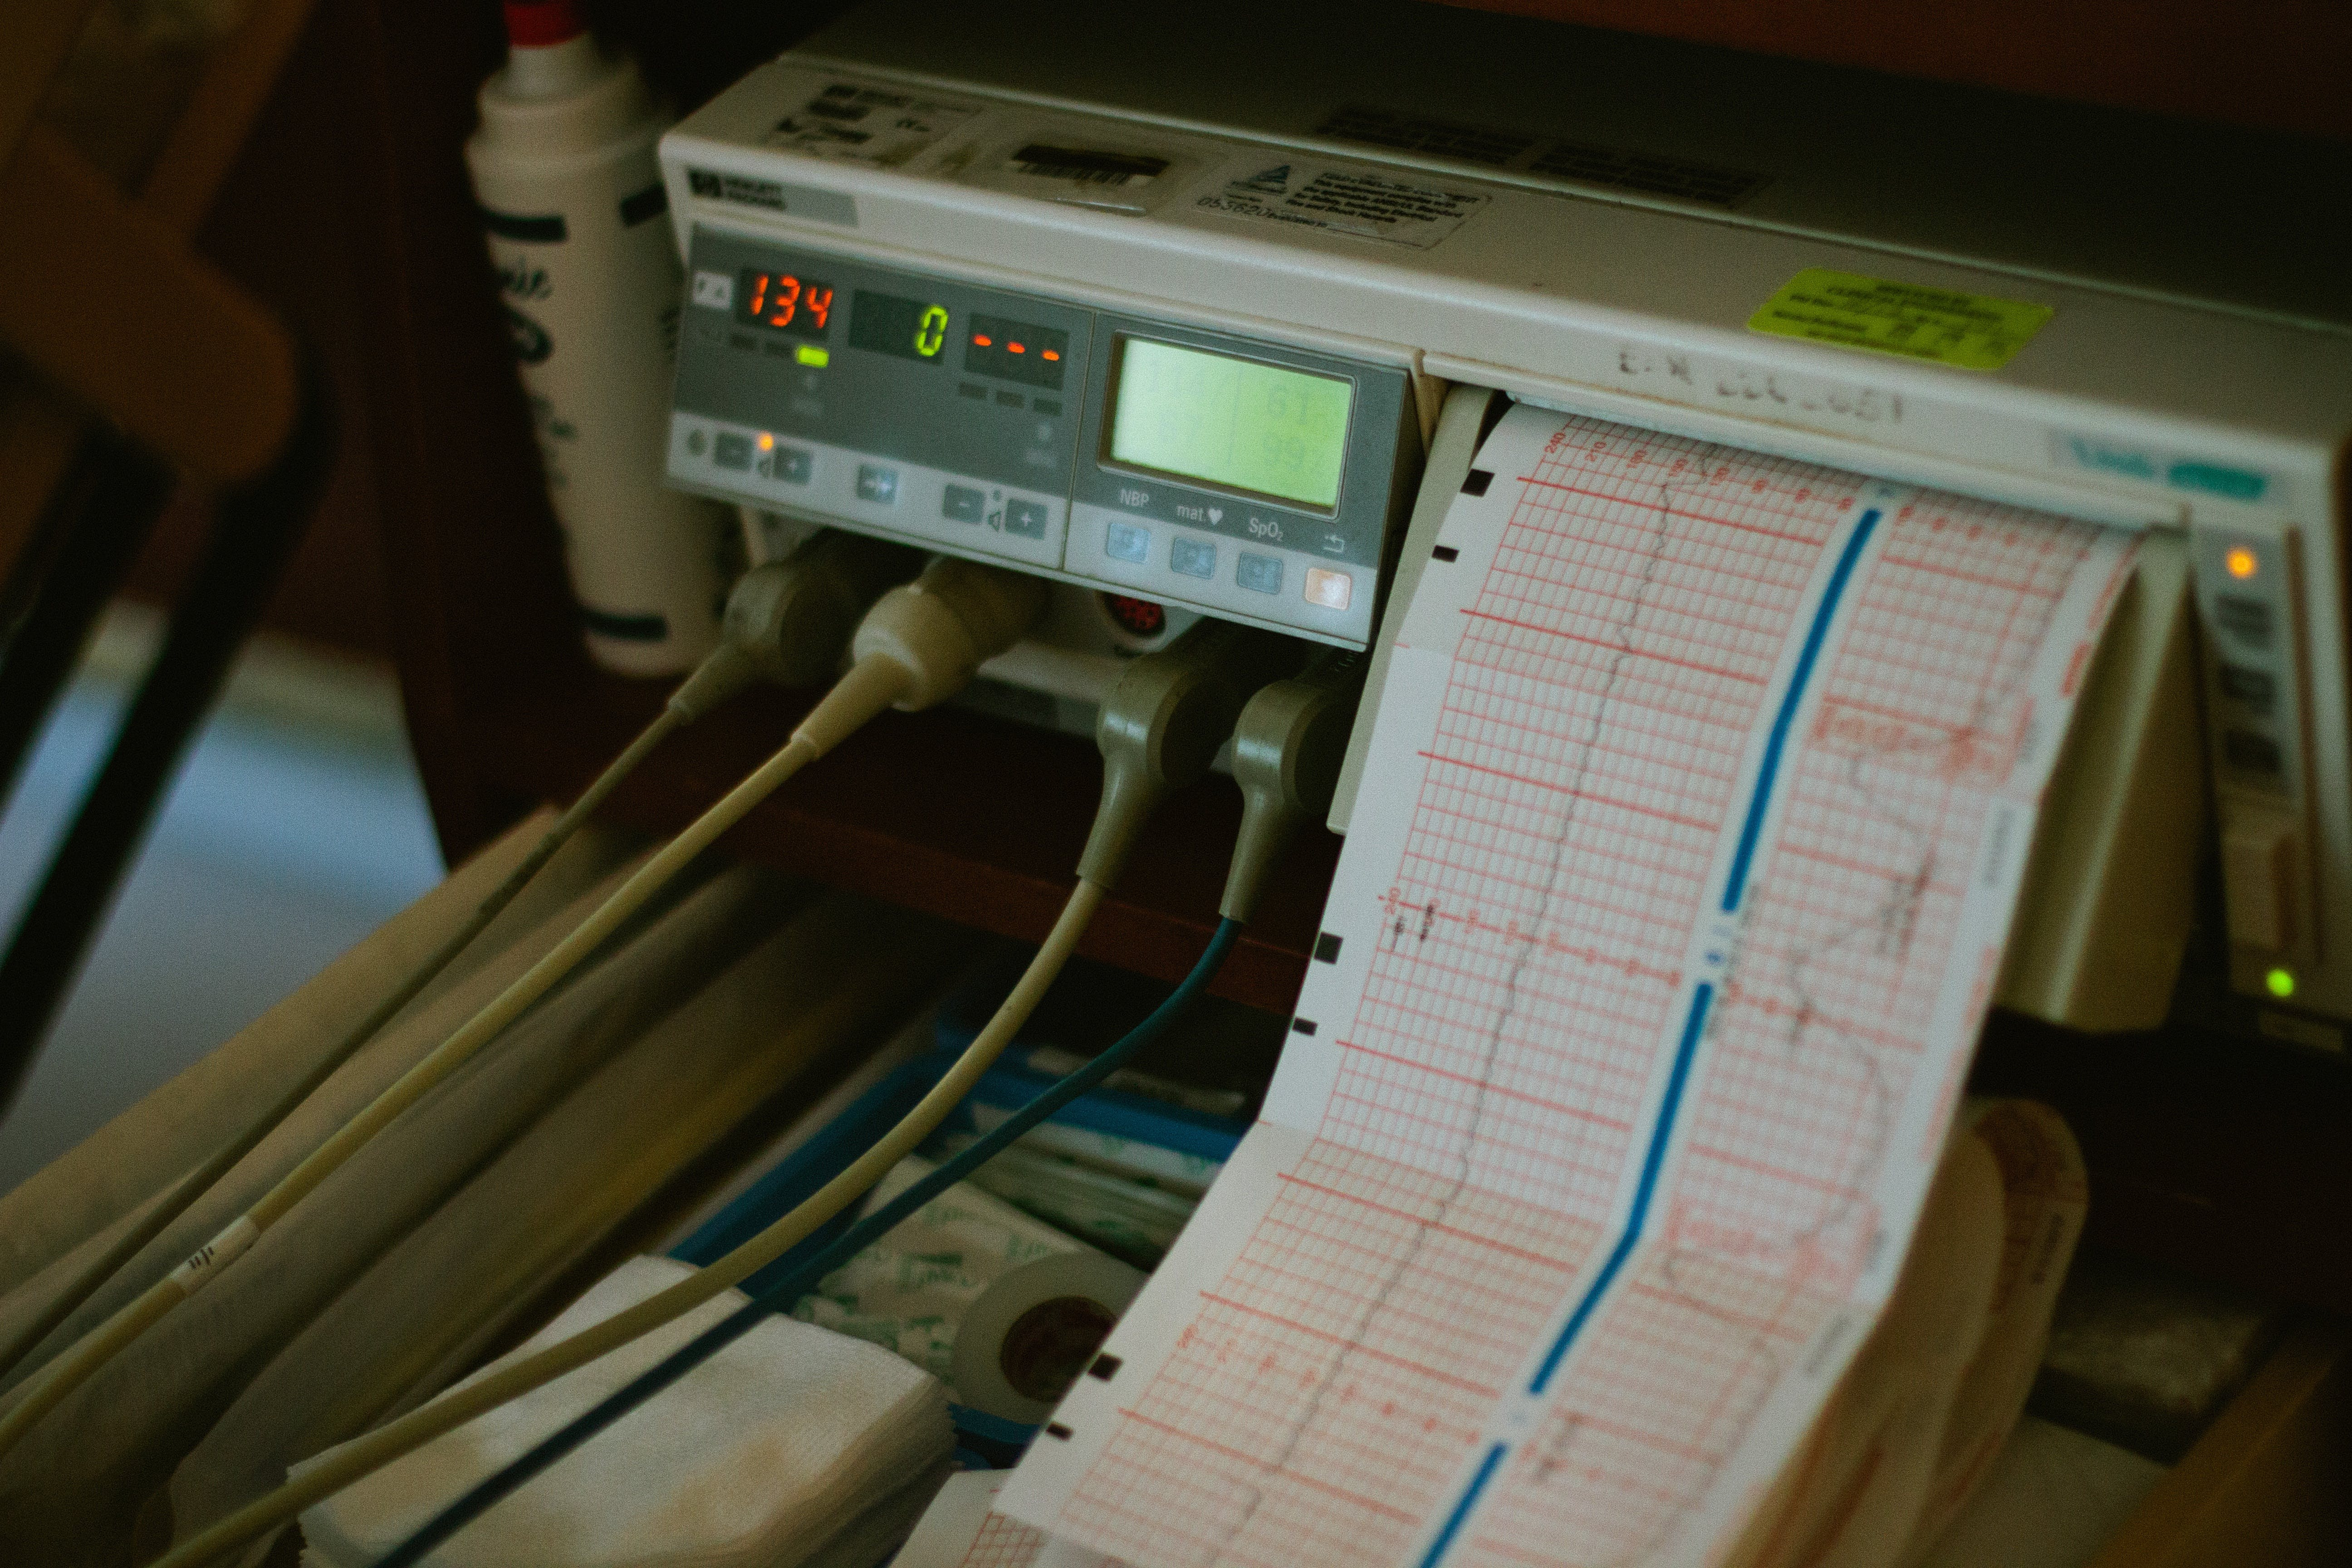 Ecg Machine Reads 134